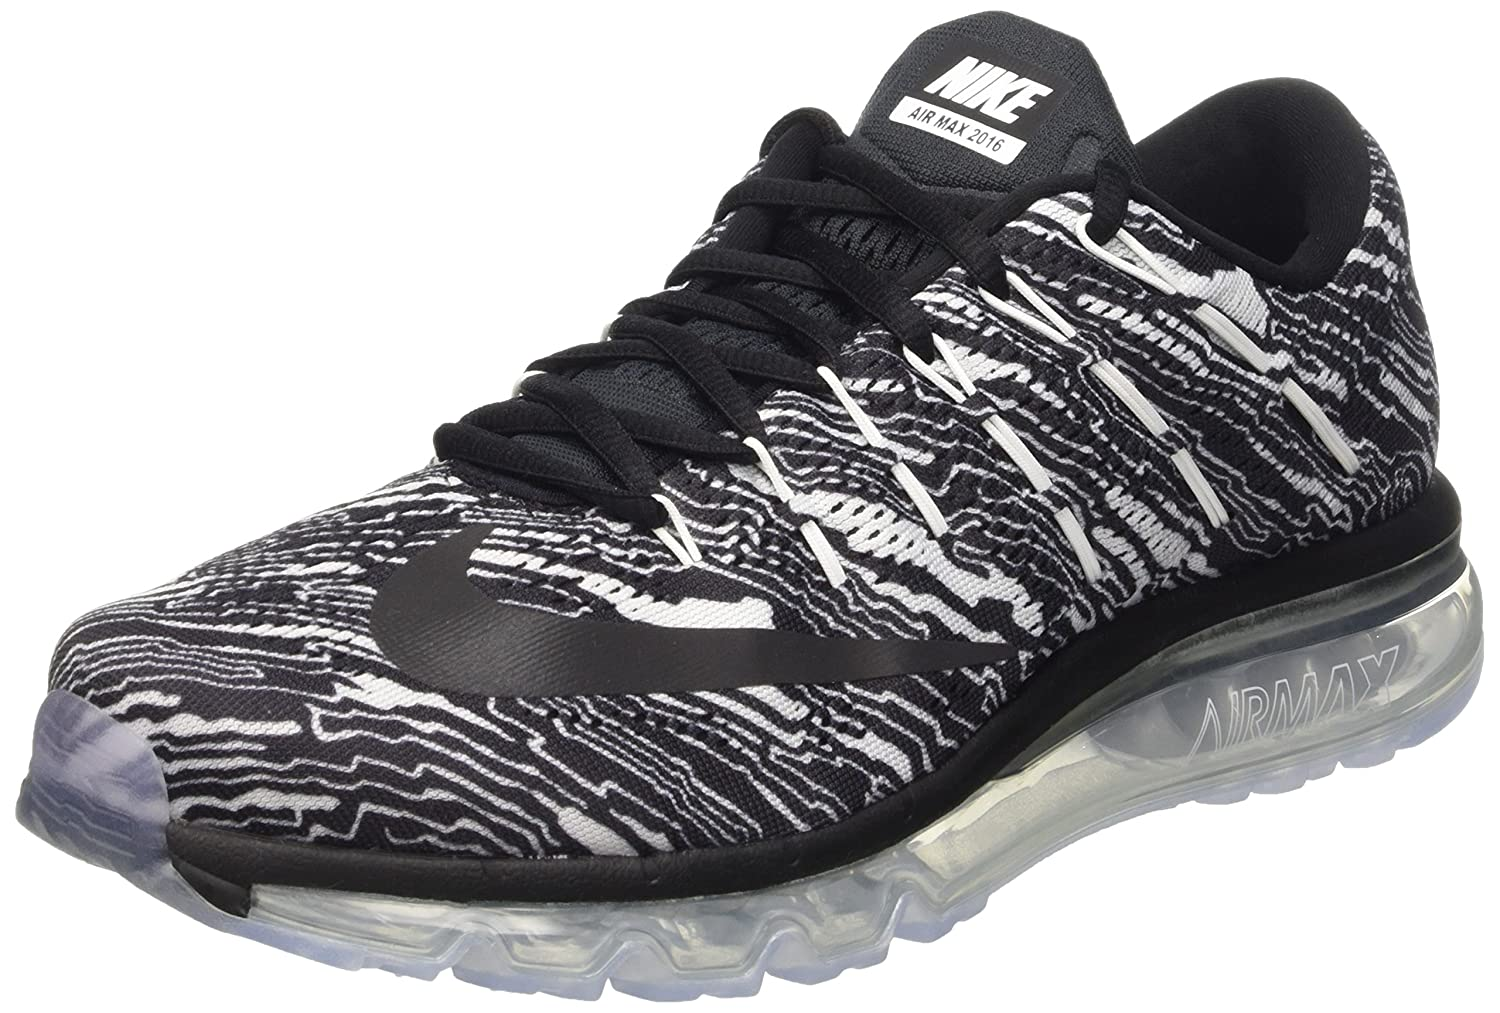 new style 9830a e00d0 Nike Men s Air Max 2016 Print Gymnastics Shoes